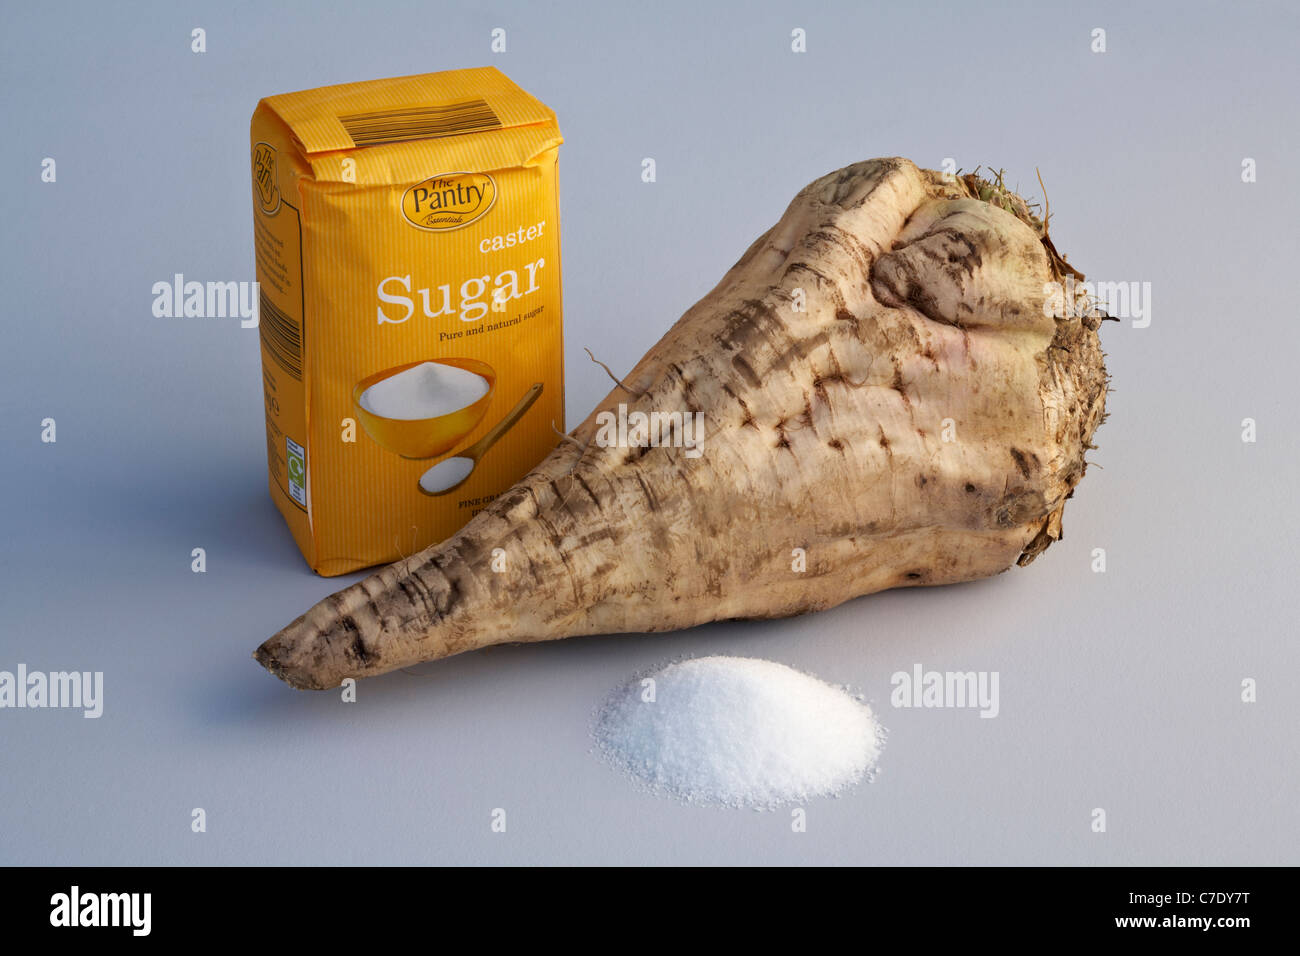 Sugar Beet Tuber with bag of Caster Sugar and pile of granulated sugar foreground - Stock Image